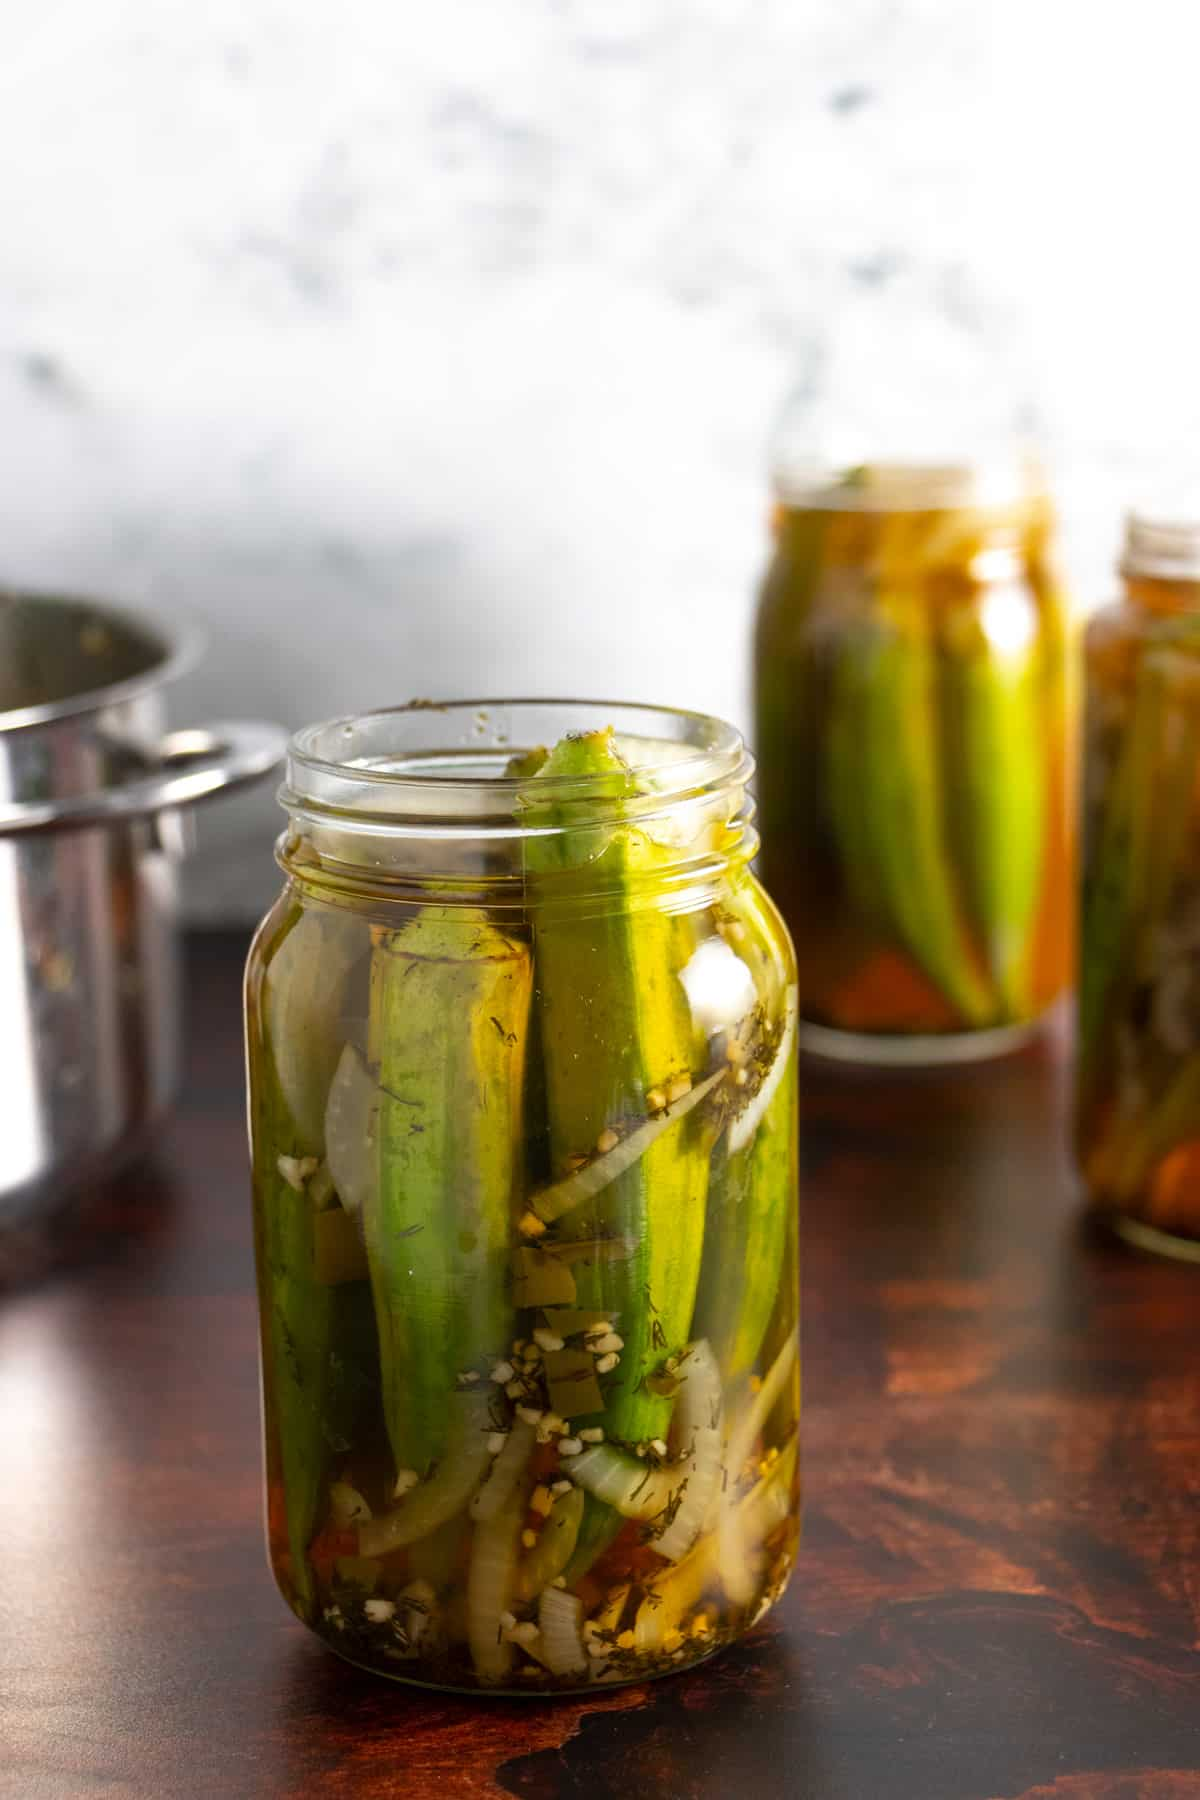 jars of pickled okra on a wooden counter with a marble backsplash